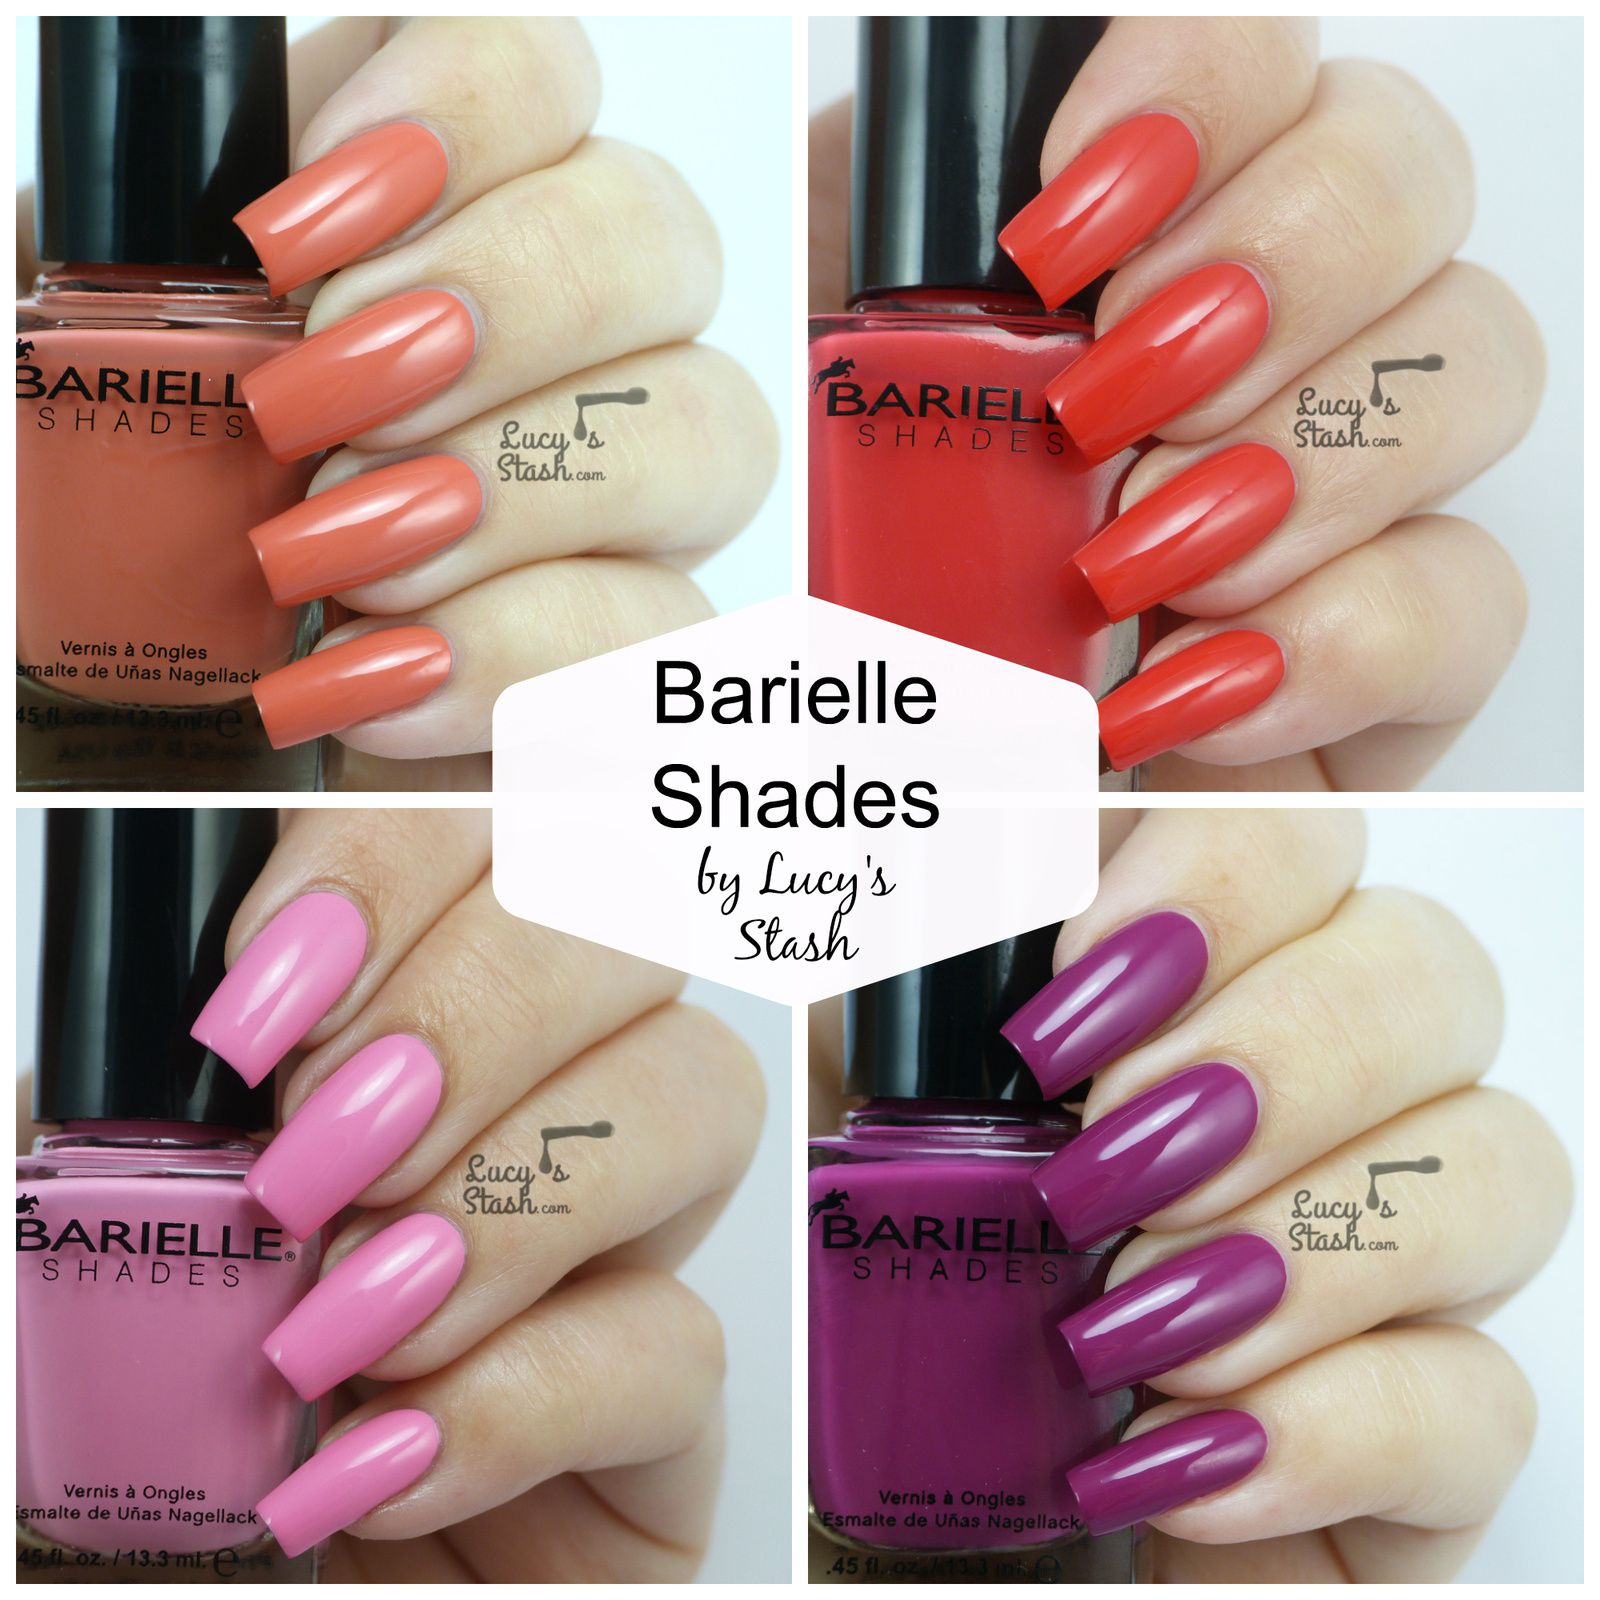 Barielle Swatch Spam!